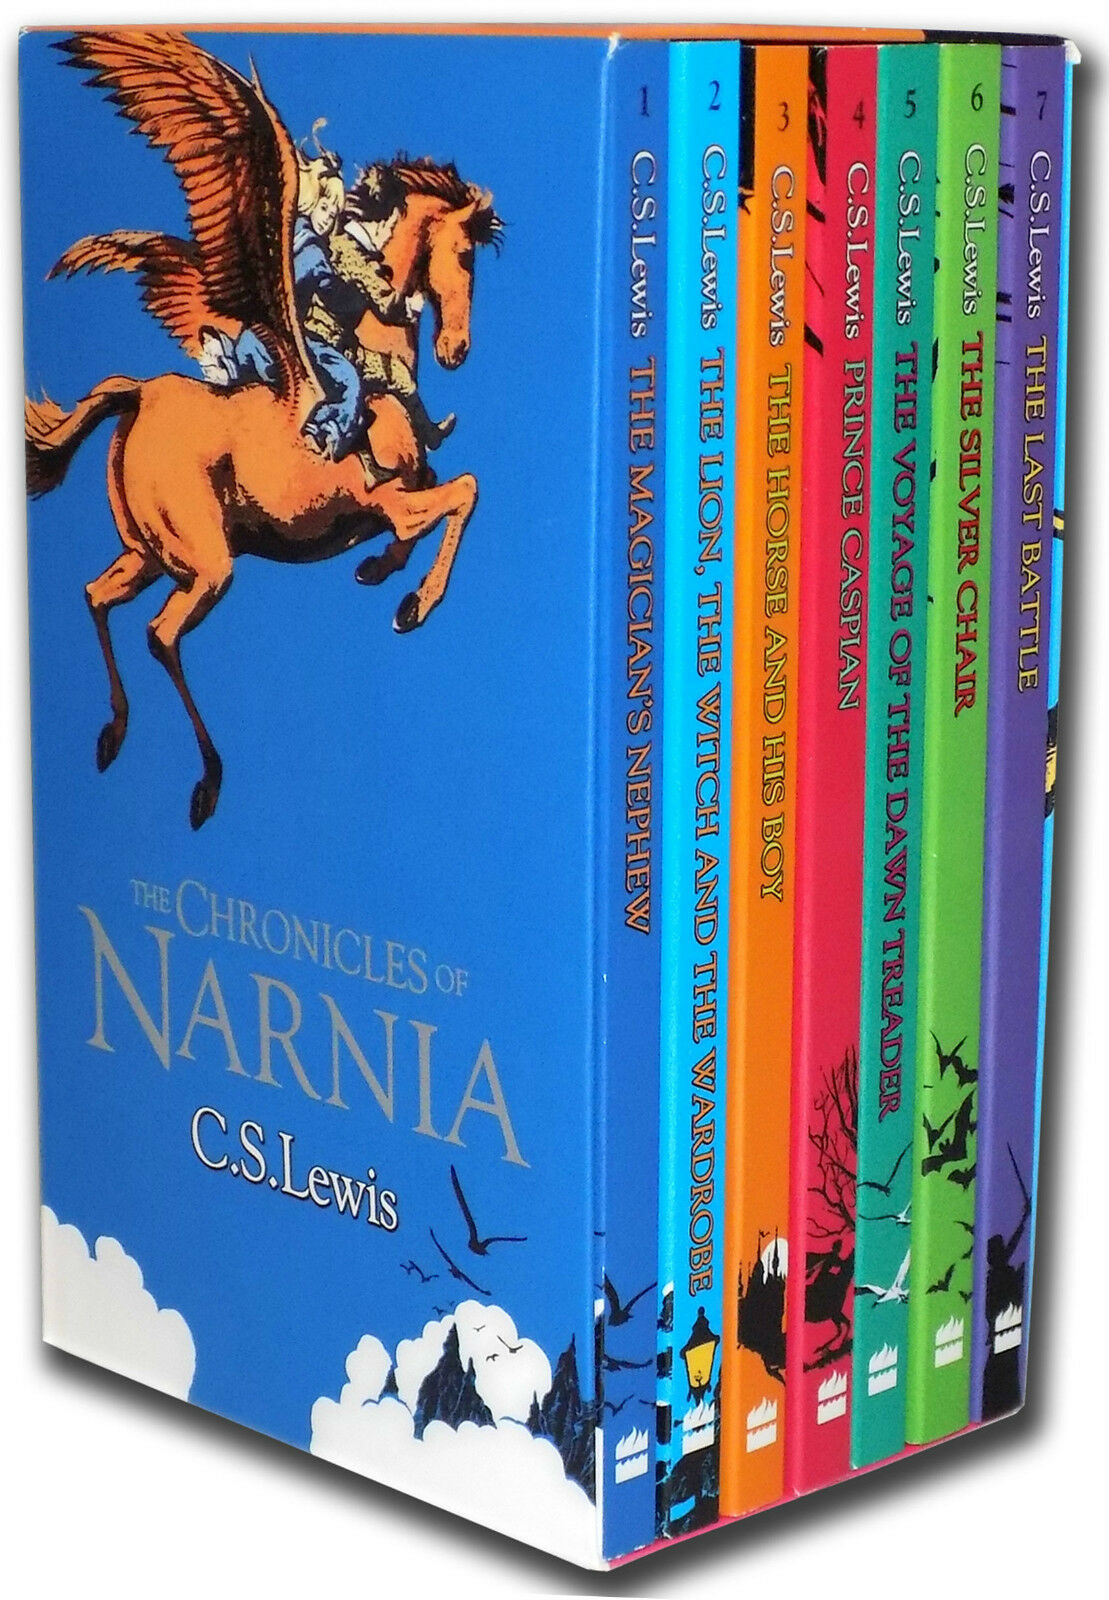 an introduction to the literary analysis of the narnia series Discussion about the harry potter series brings a lot of strong feelings from christians who believe the books are harmless and others who believe it's introduction into magic and satanism my question is why doesn't the chronicles of narnia series bring as much controversy are there some.